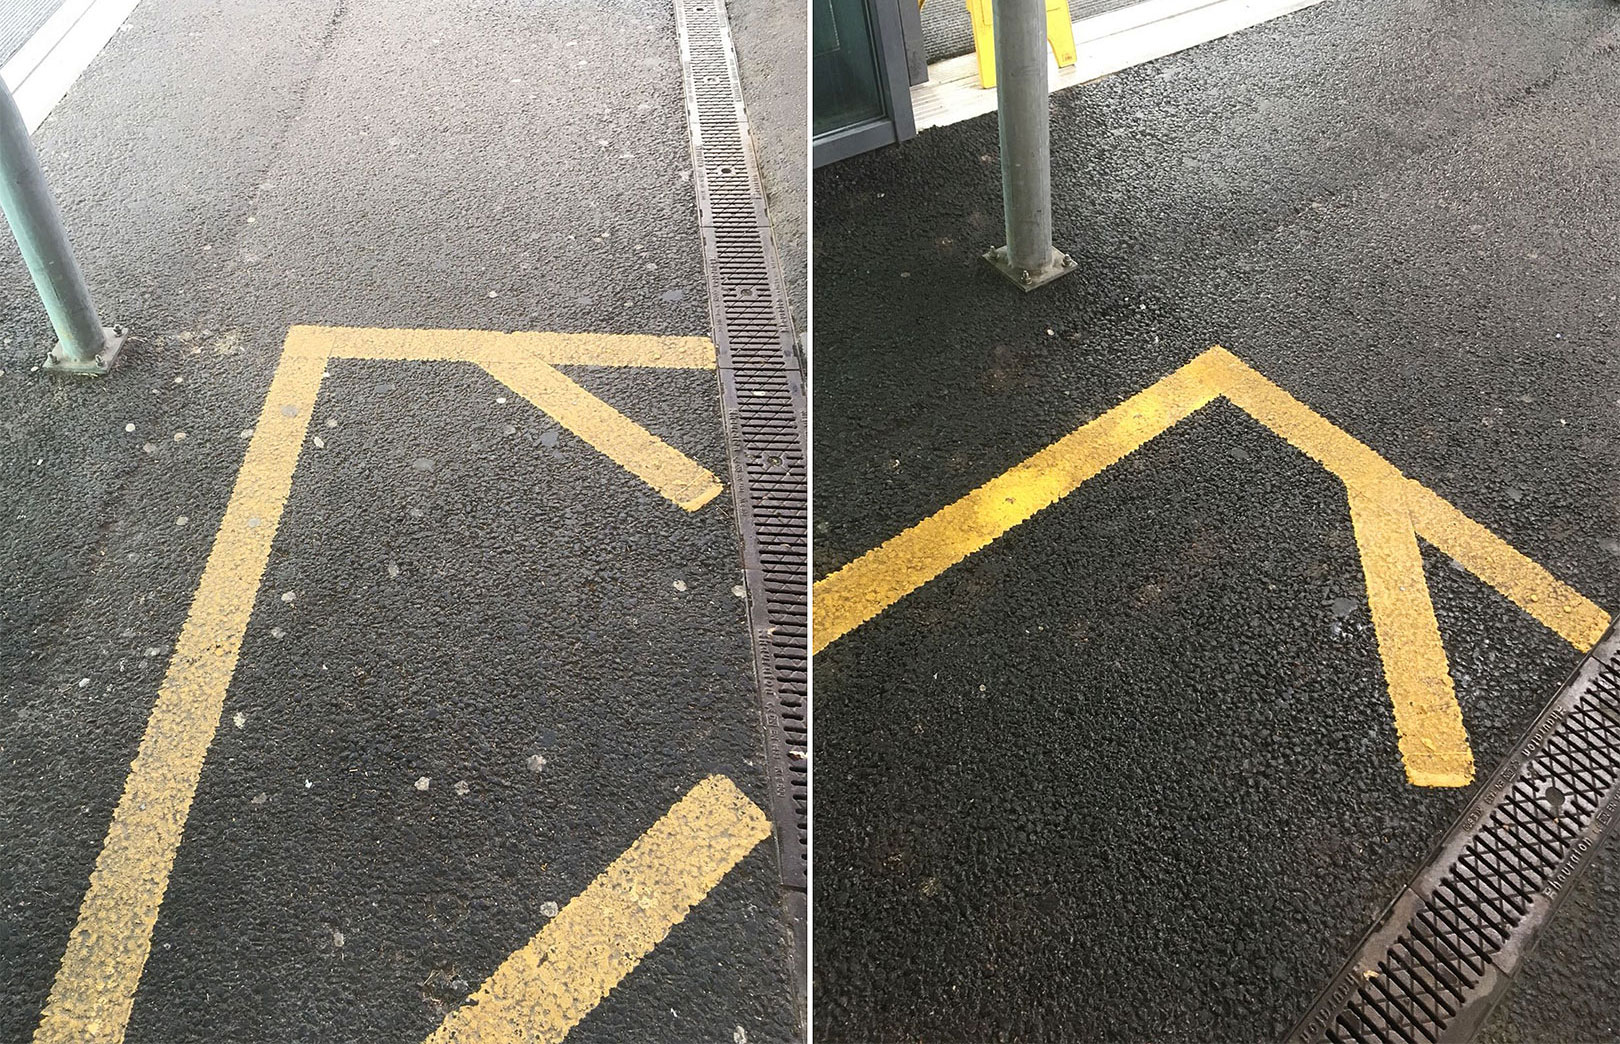 chewing gum removal on tarmac compare before and after cleaning